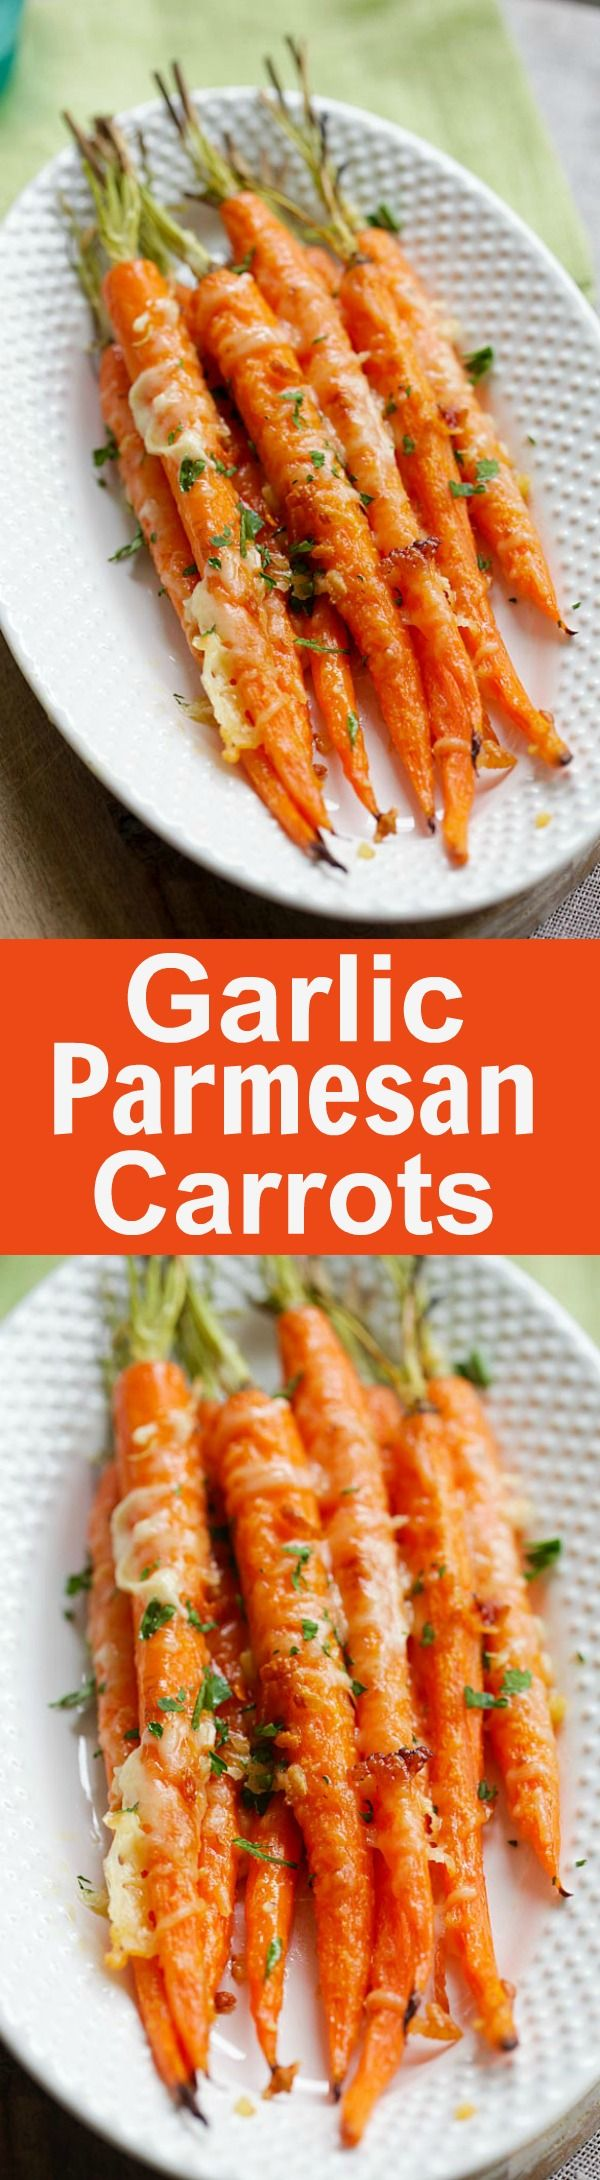 Garlic Parmesan Roasted Carrots – Oven roasted carrots with butter, garlic and Parmesan cheese. The easiest and most delicious side dish ever | rasamalaysia.com